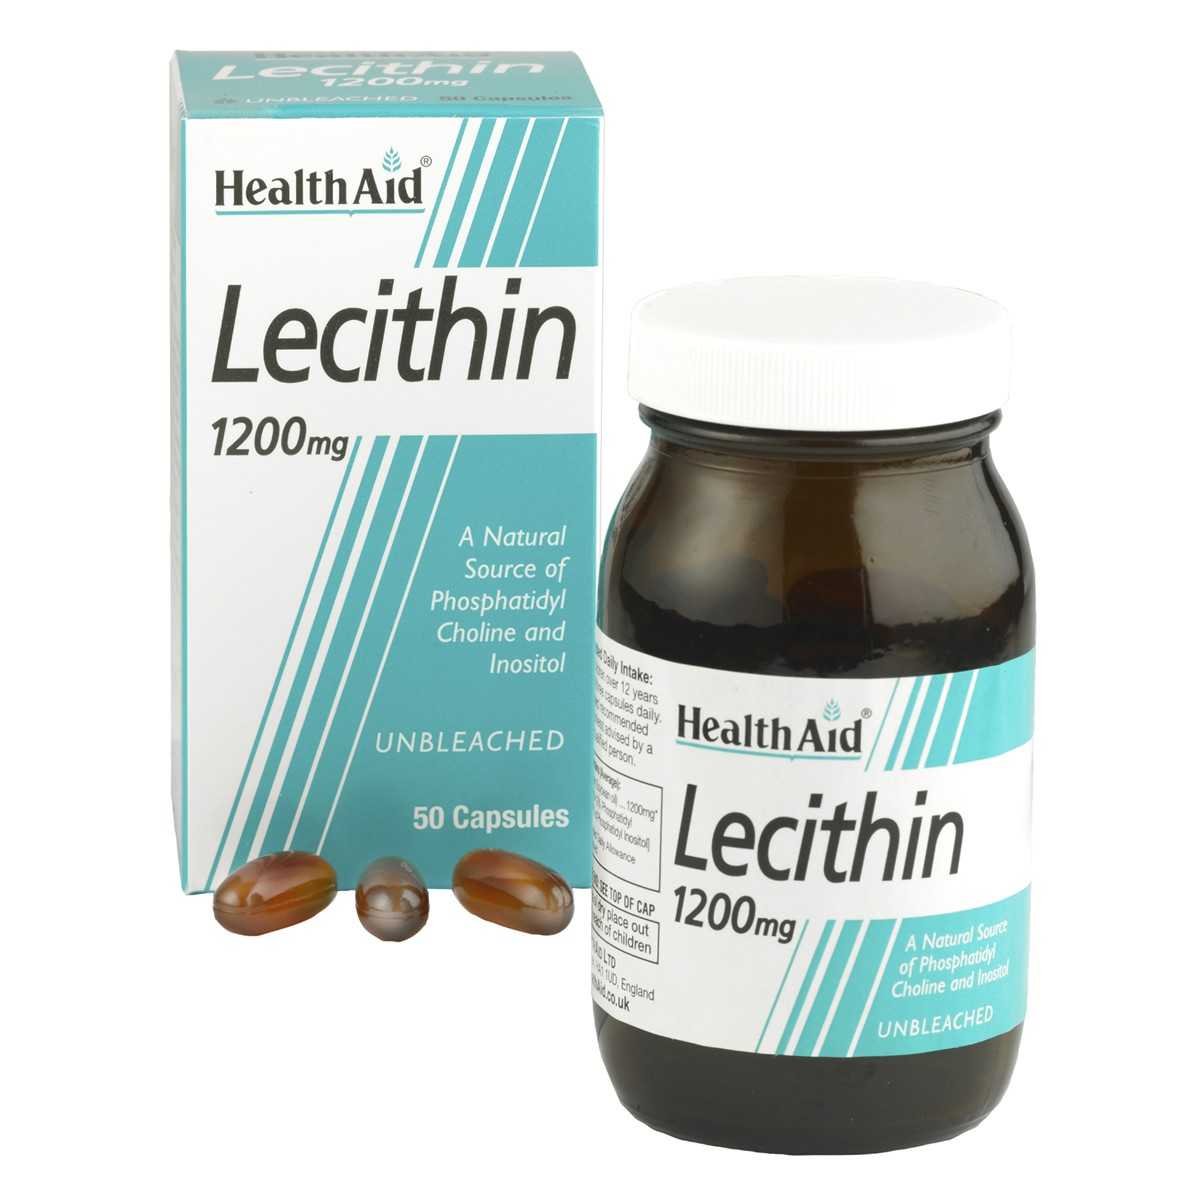 HealthAid Lecithin 1200mg (unbleached) Capsules